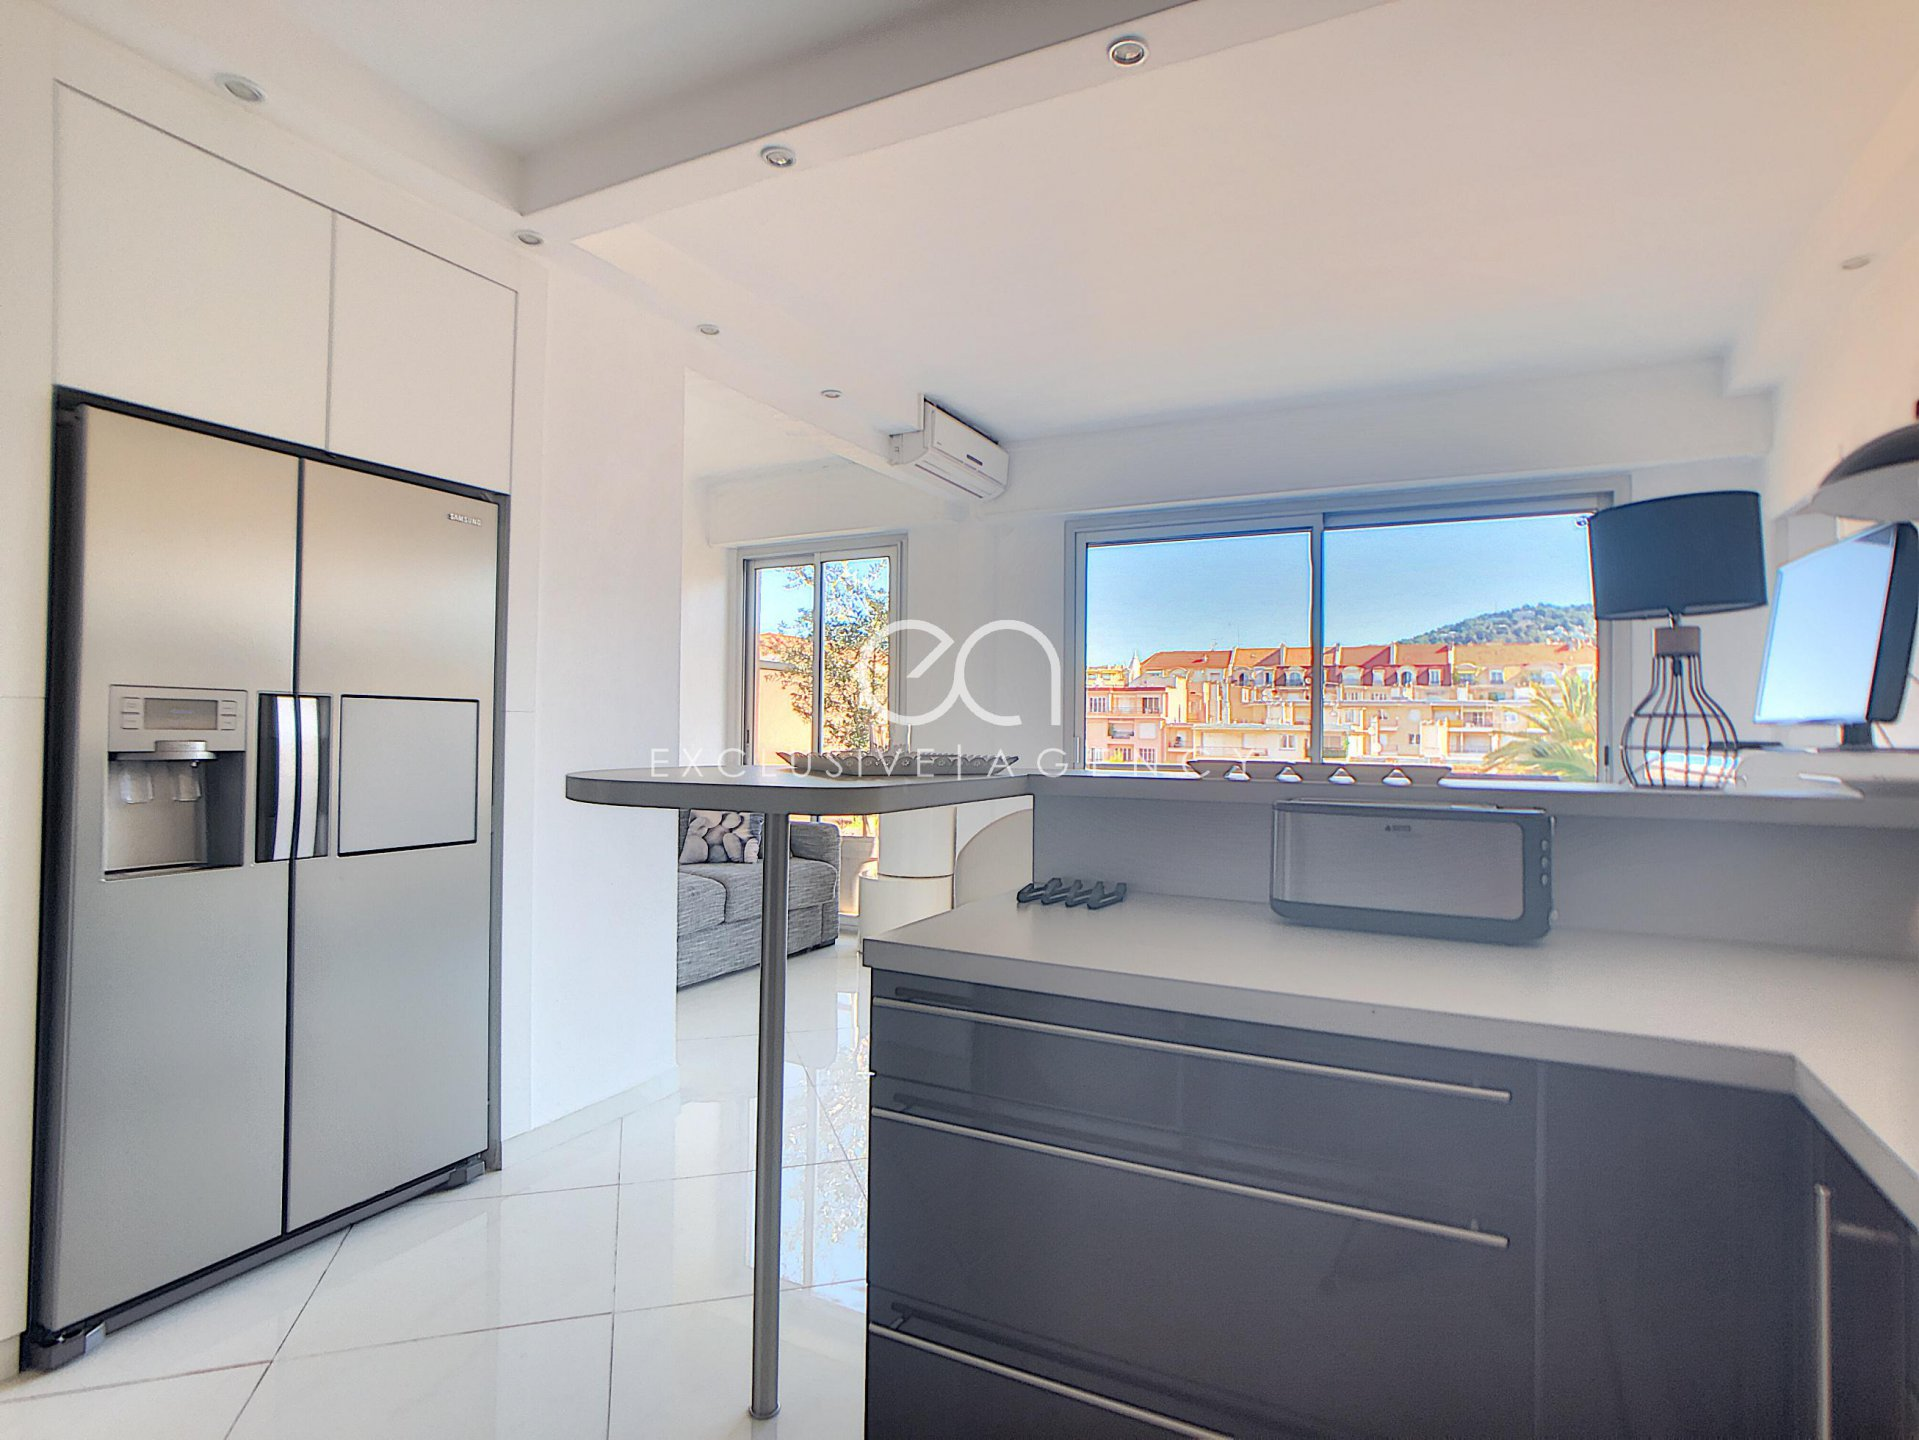 For sale Cannes banane - 1 bedroom apartment of 41sqm